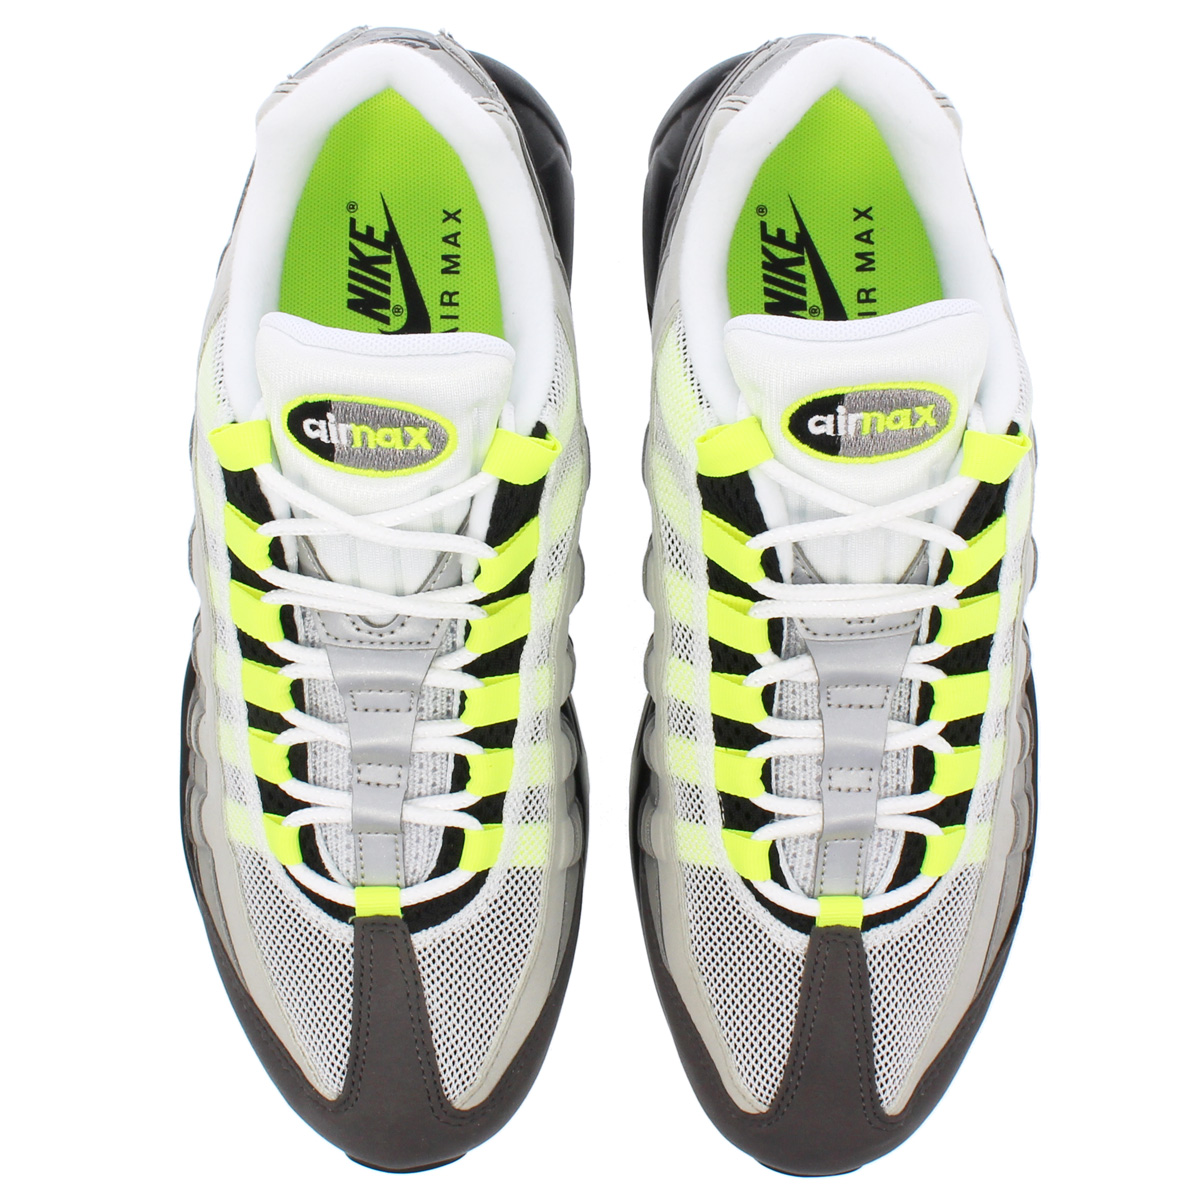 100% authentic 07e7b de10a NIKE AIR MAX 95 OG Nike Air Max 95 OG BLACK VOLT MEDIUM ASH DARK PEWTER